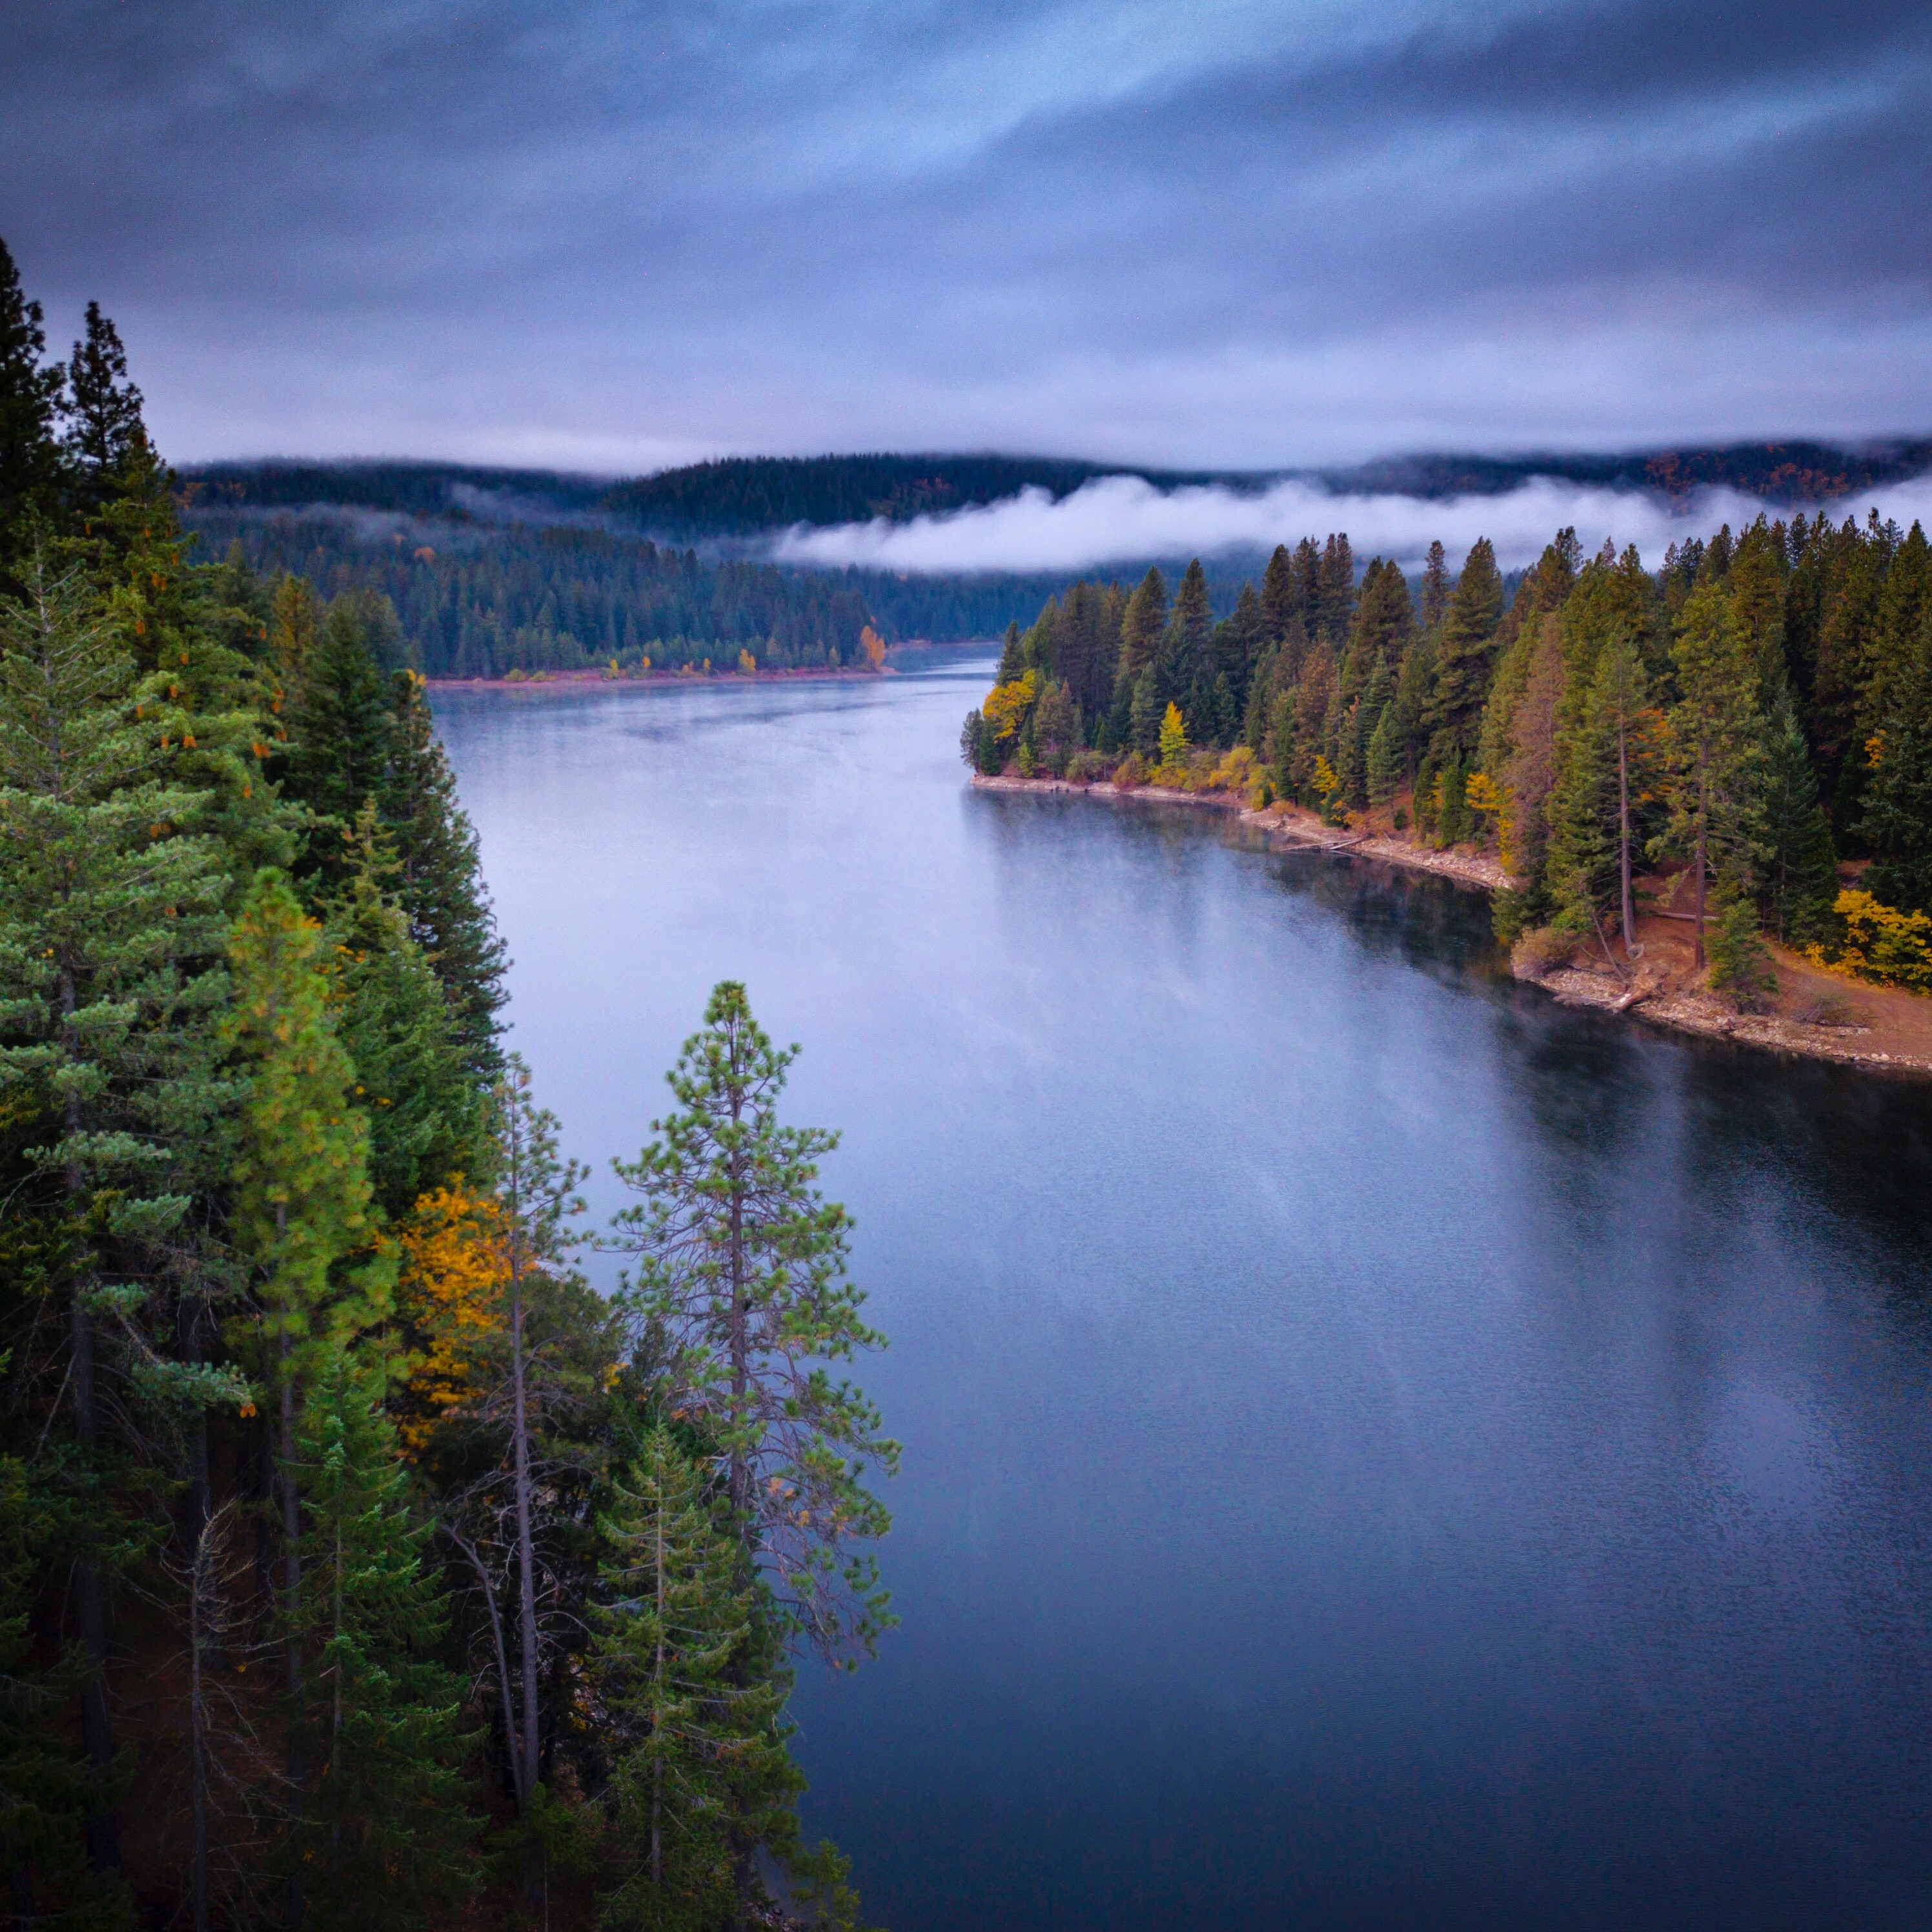 trees near body of water under cloudy sky